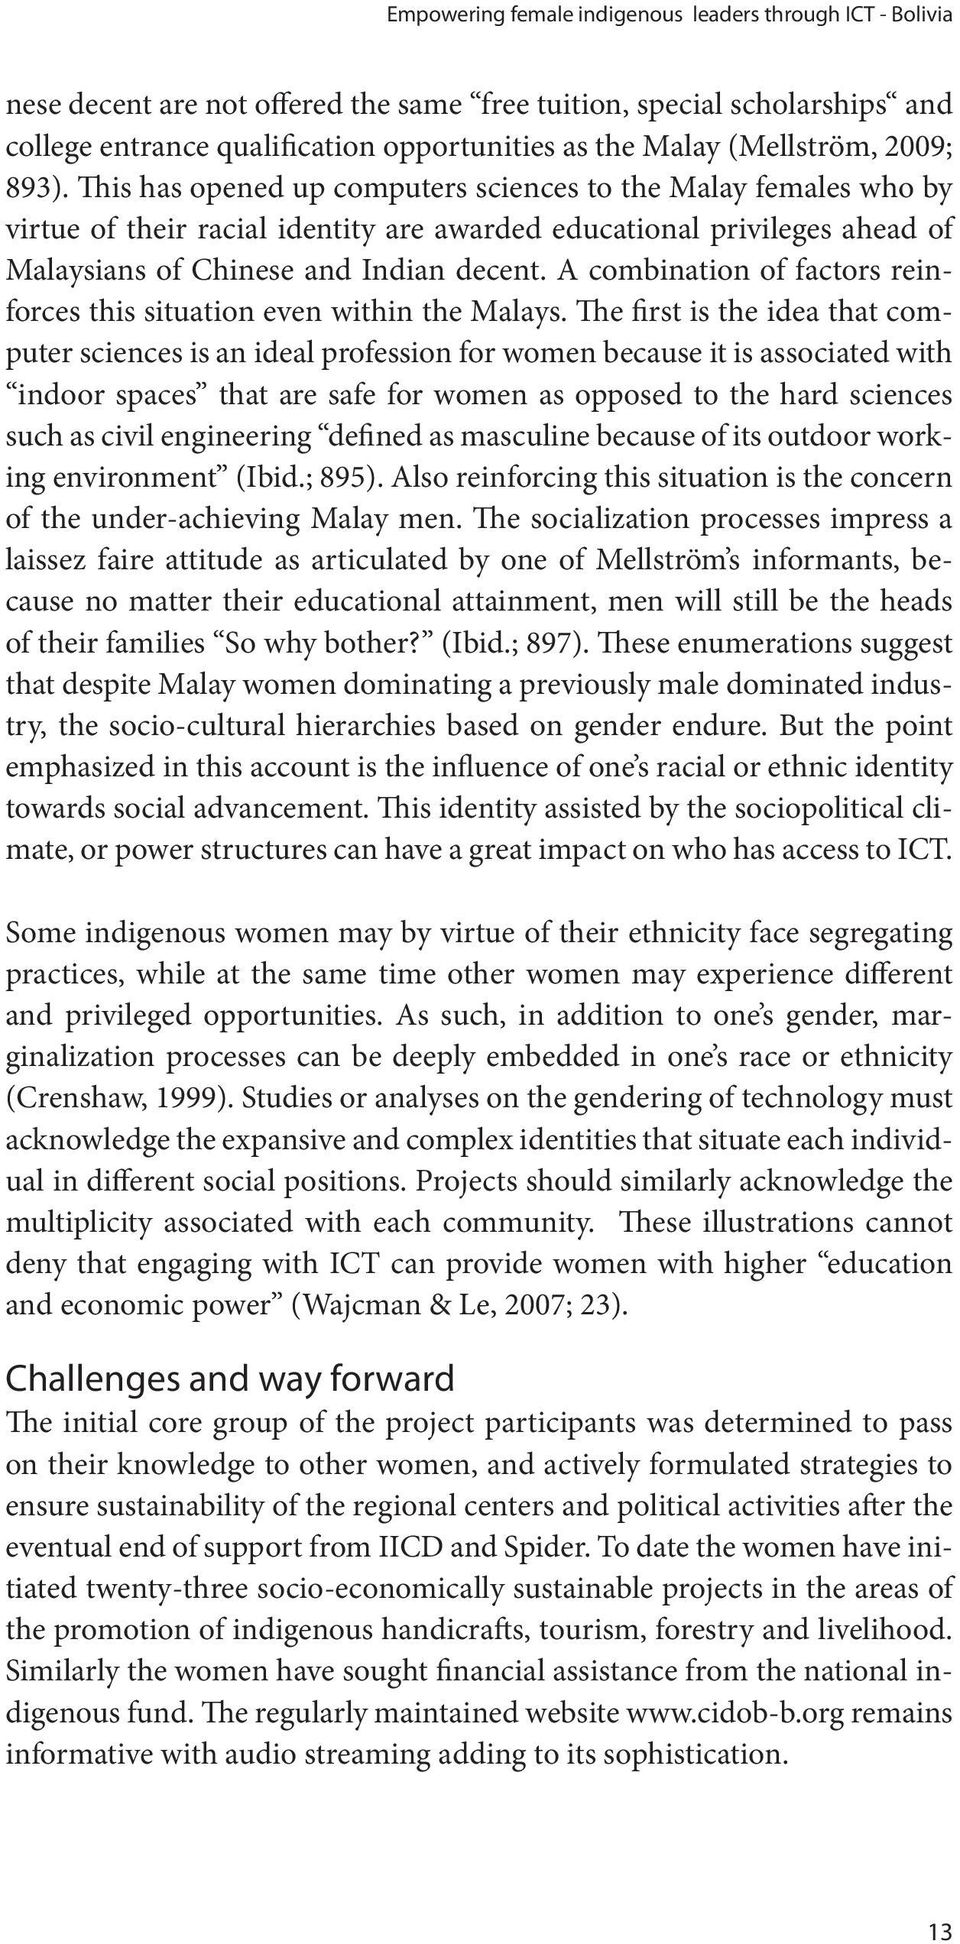 This has opened up computers sciences to the Malay females who by virtue of their racial identity are awarded educational privileges ahead of Malaysians of Chinese and Indian decent.